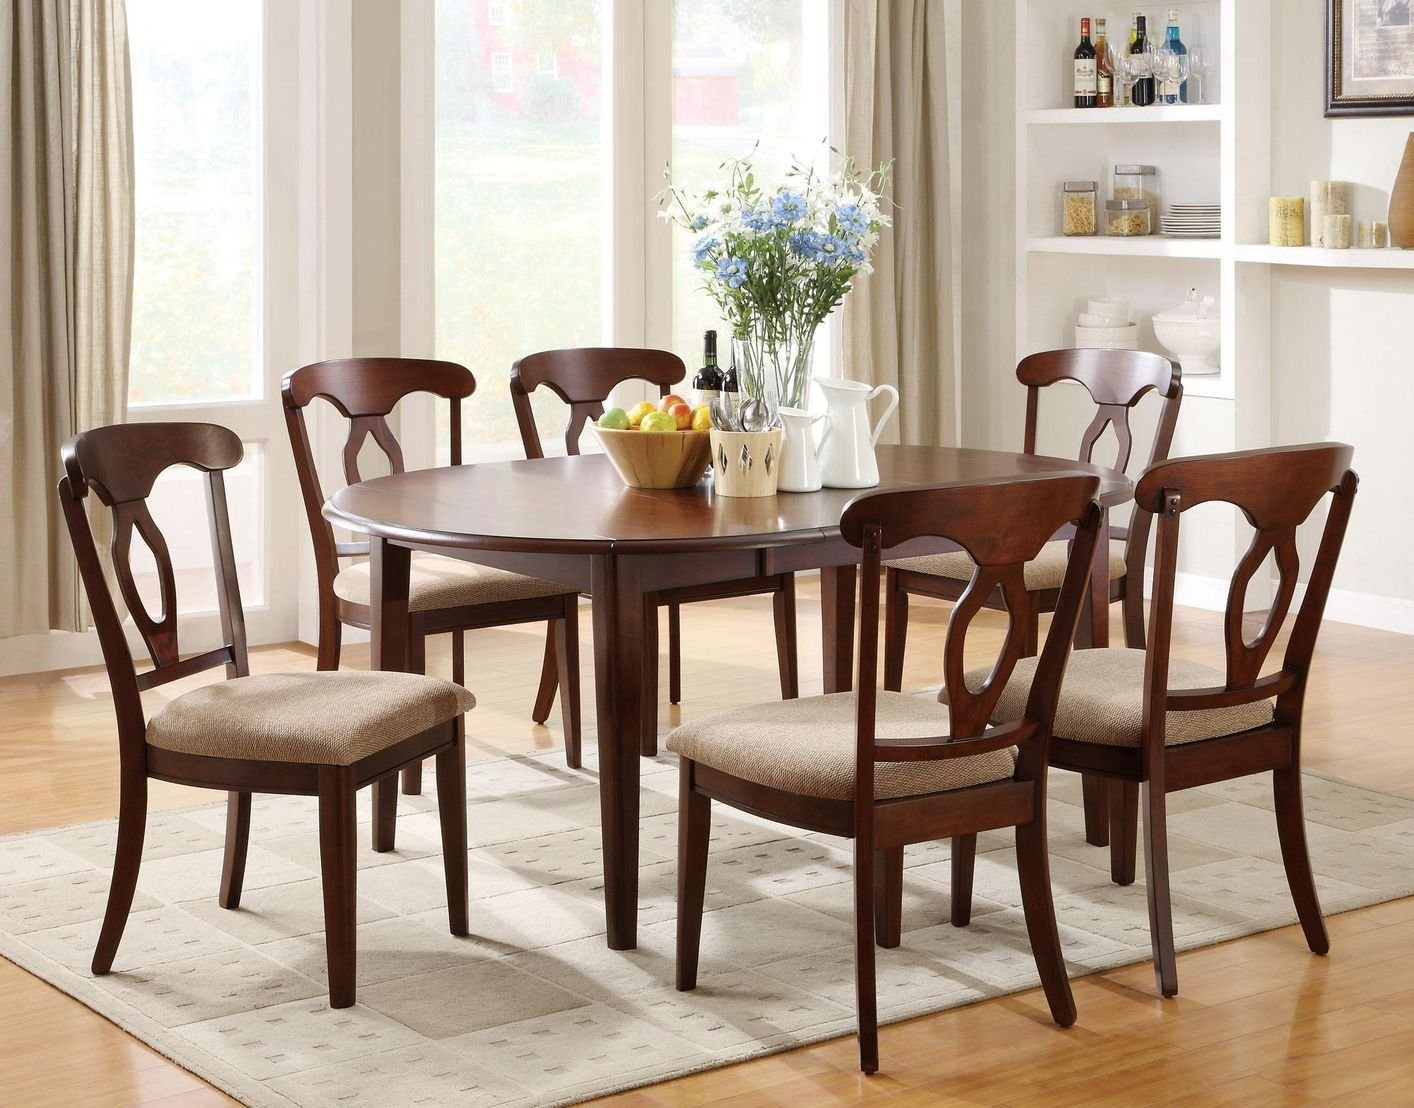 Accommodate Array Of Dinner Party Sizes With